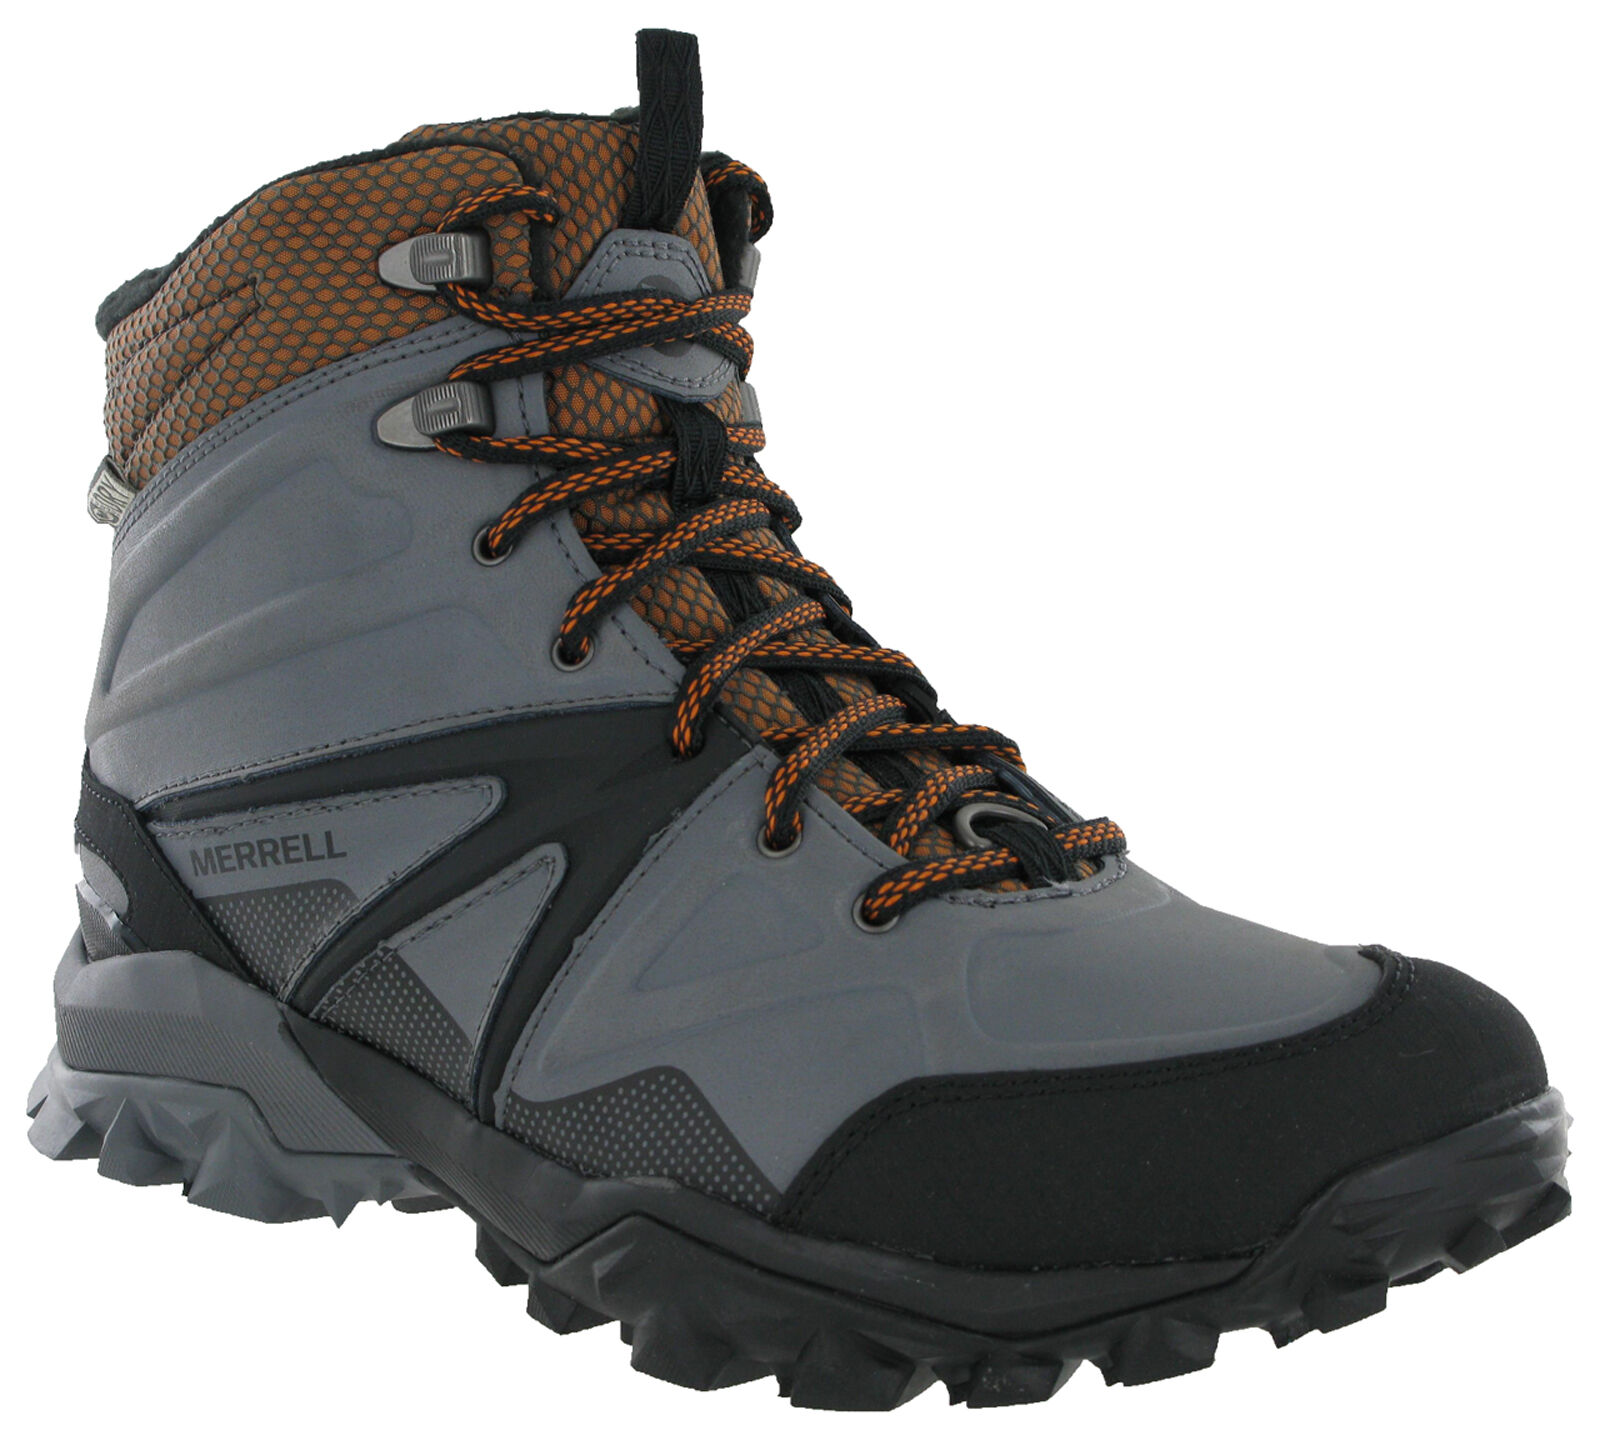 Merrell Capra Glacial Boots Mens Mid Ice+ Grip Waterproof Hiking Walking shoes